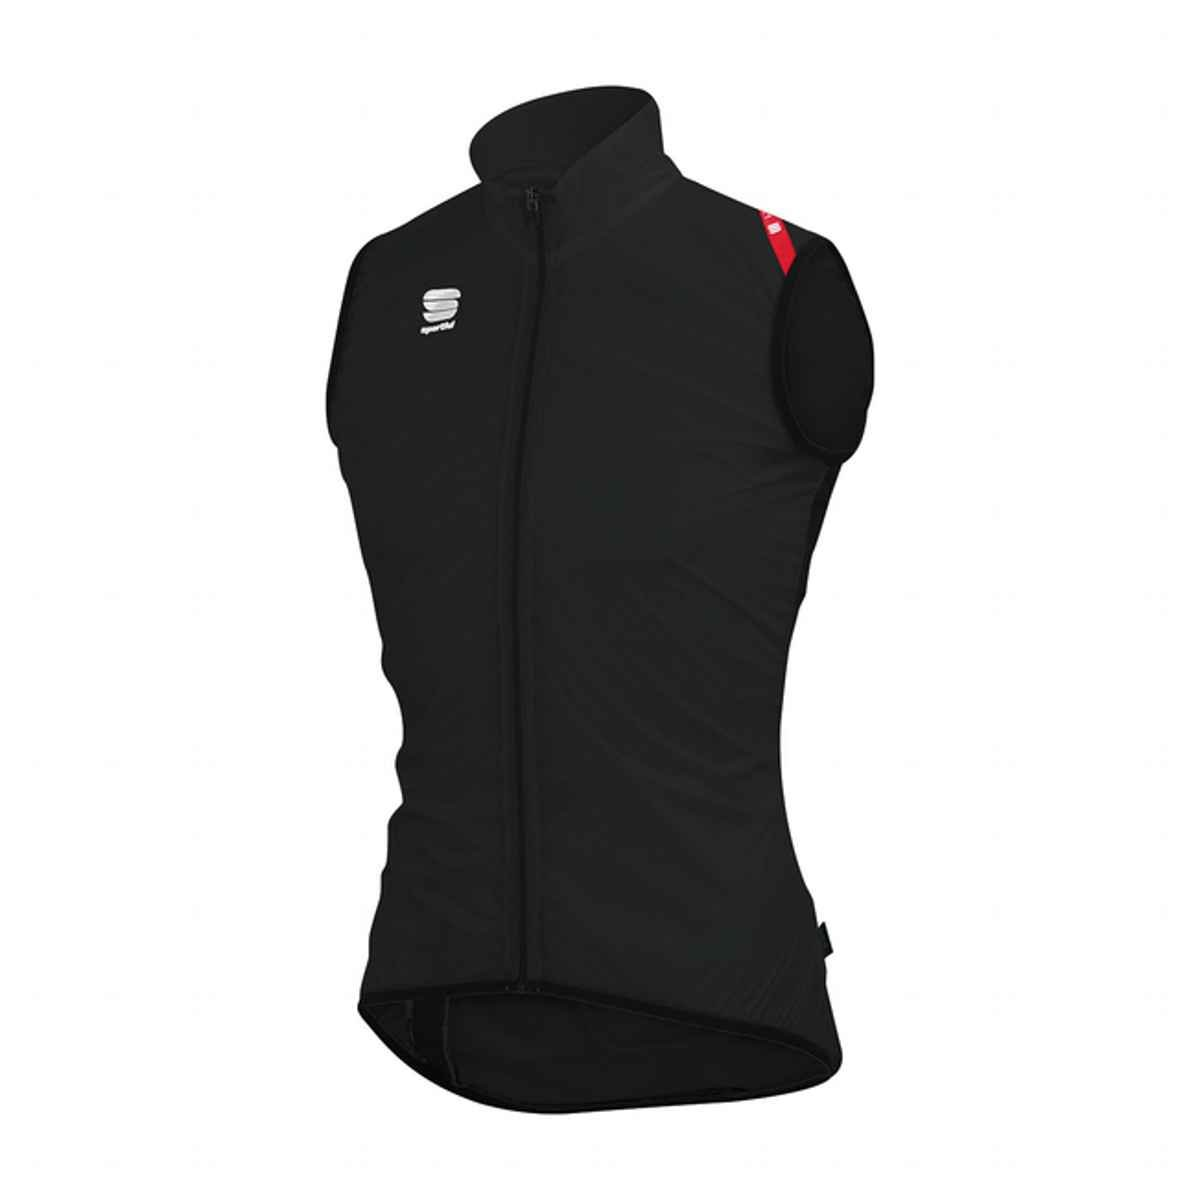 Amazon.com   Sportful Men s Hot Pack 5 Cycling Vest - C1101136   Sports    Outdoors ee4860ac6